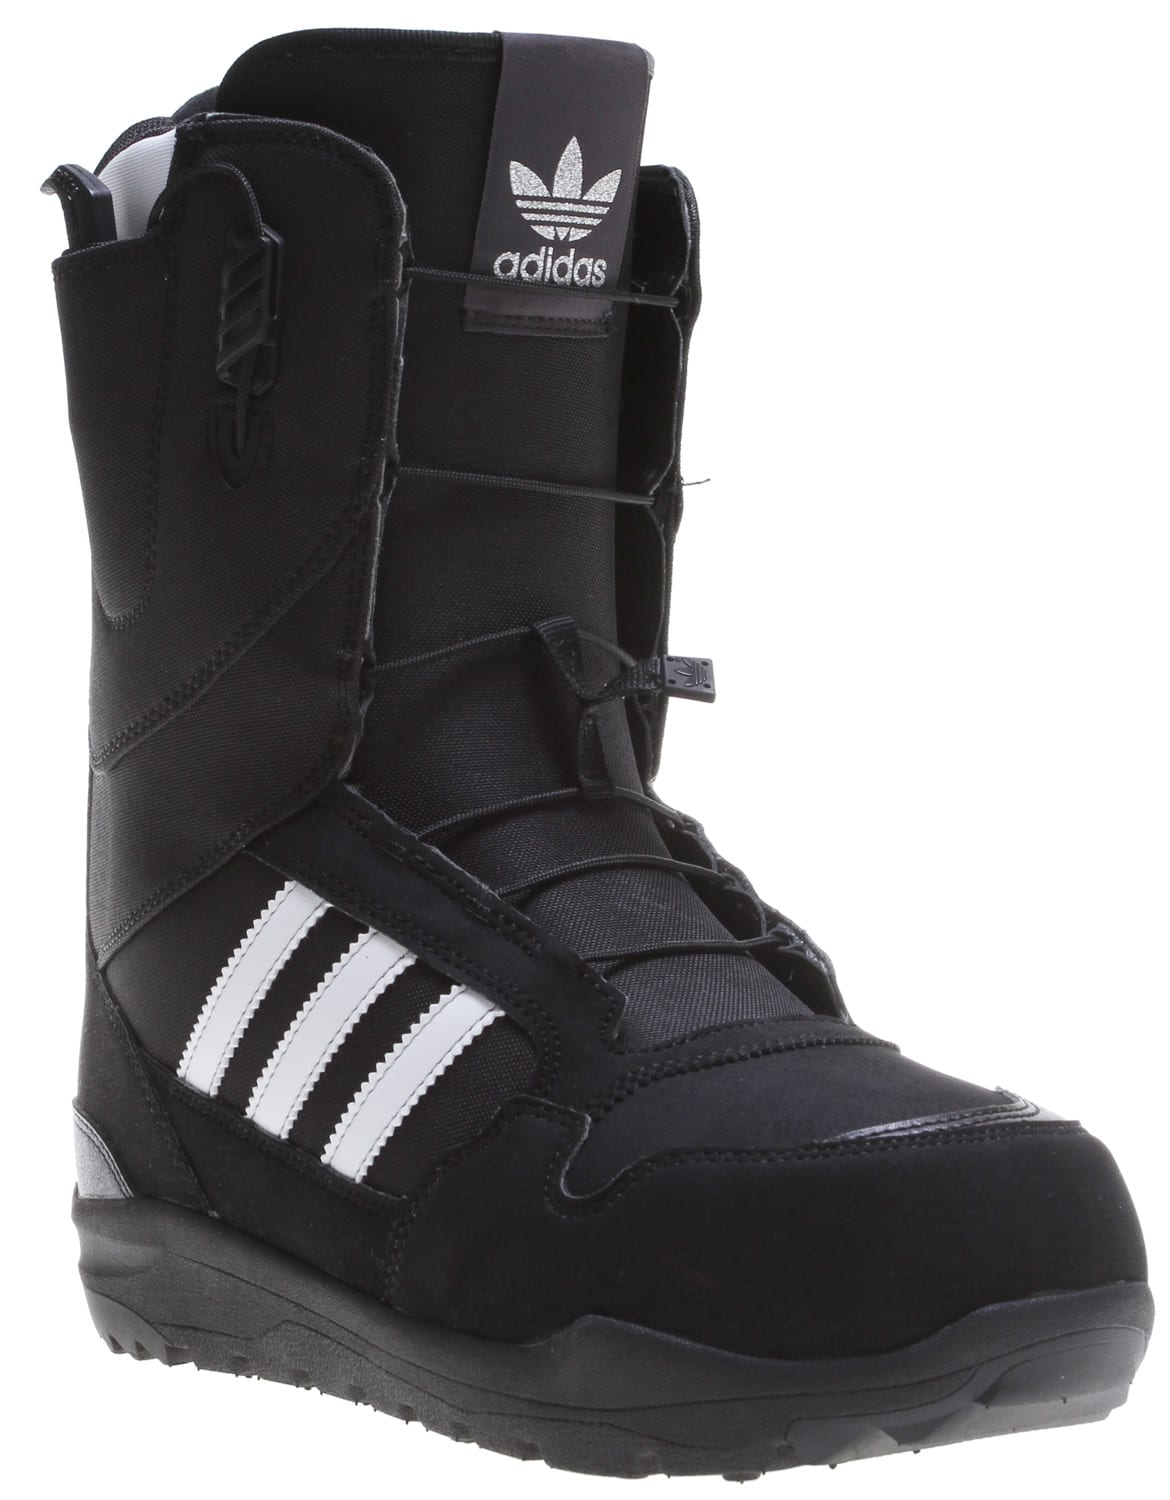 On Sale Adidas Zx 500 Snowboard Boots Up To 45  Off